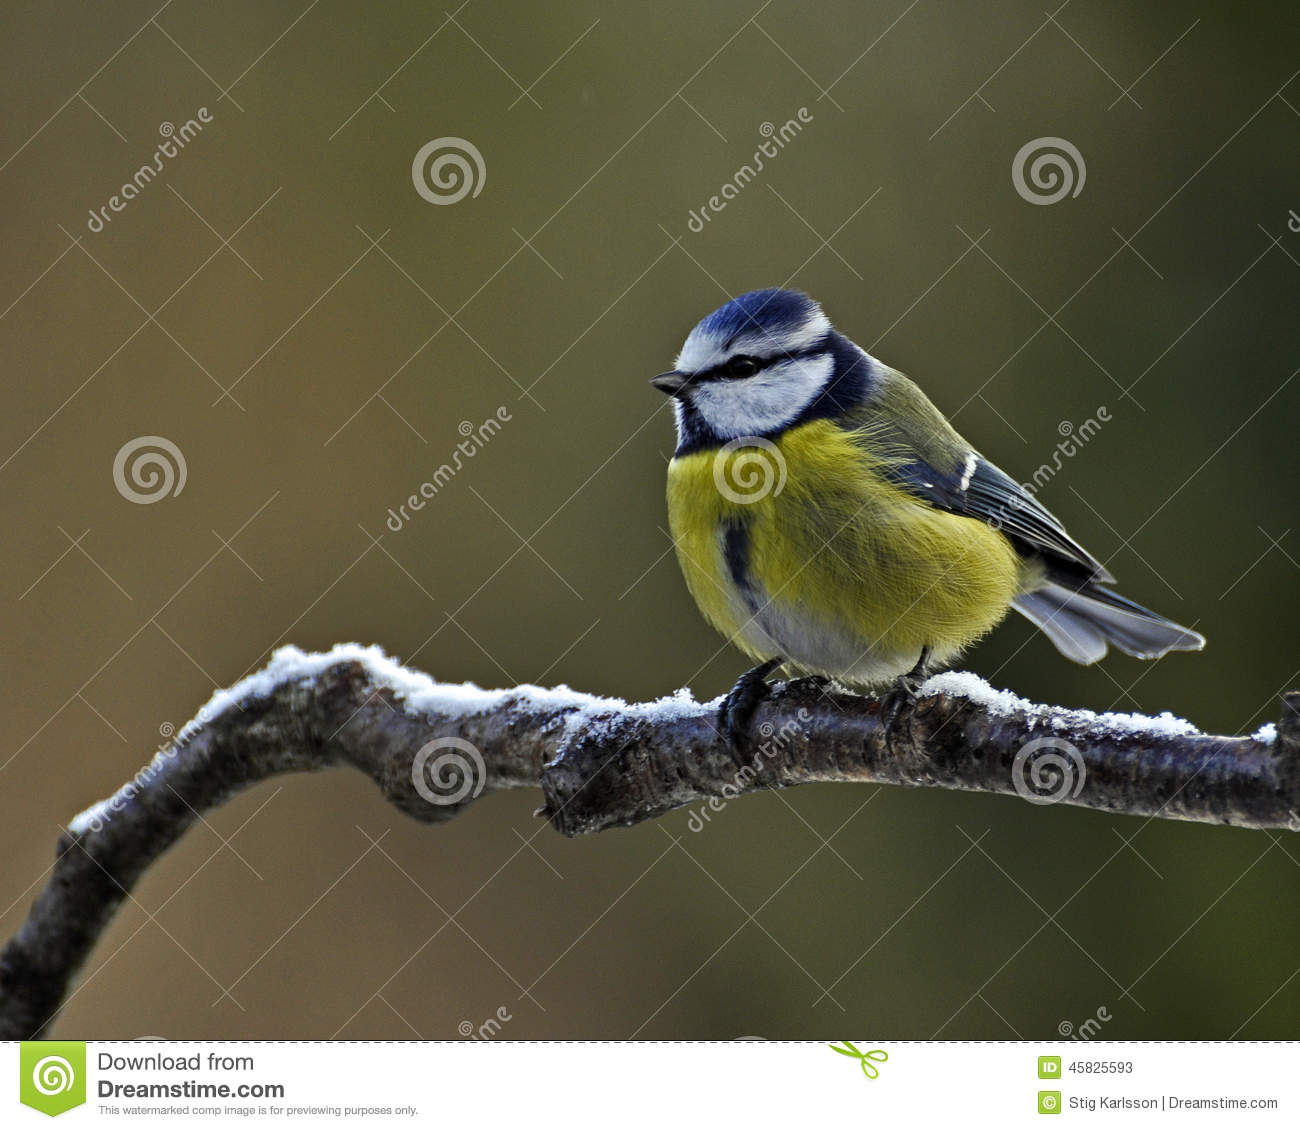 Blue Tit with snow